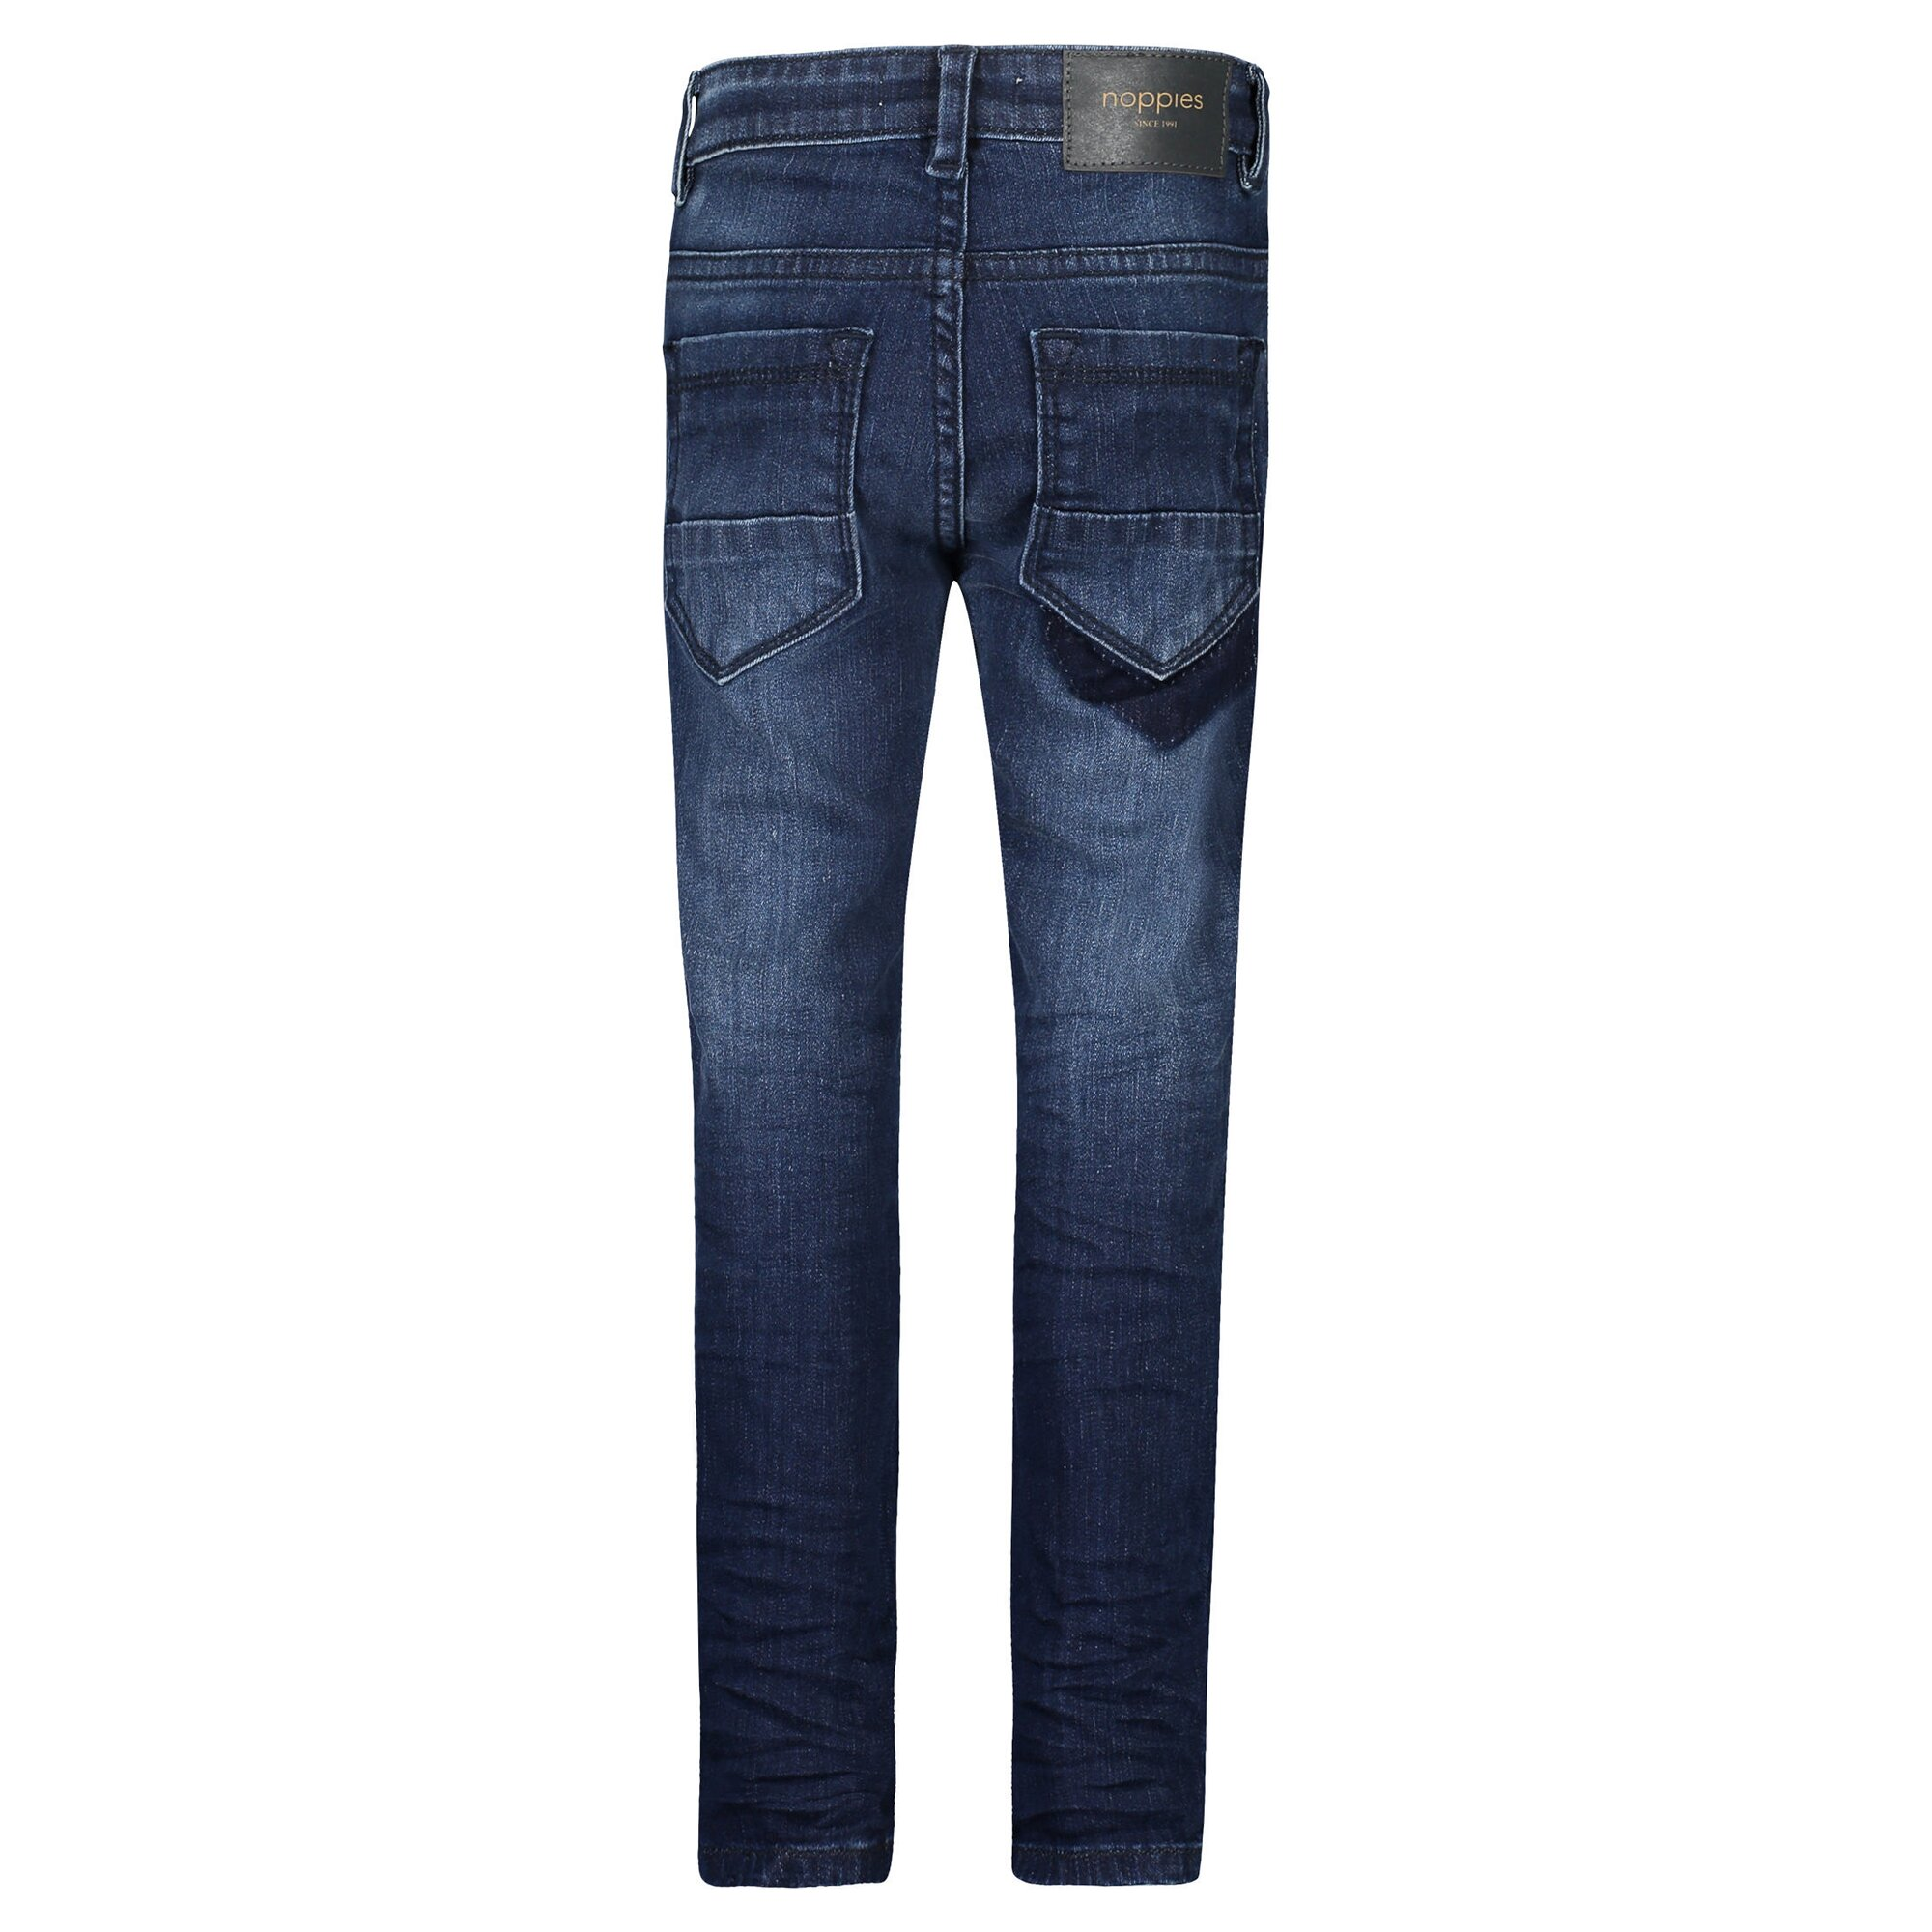 noppies-jeans-vallis